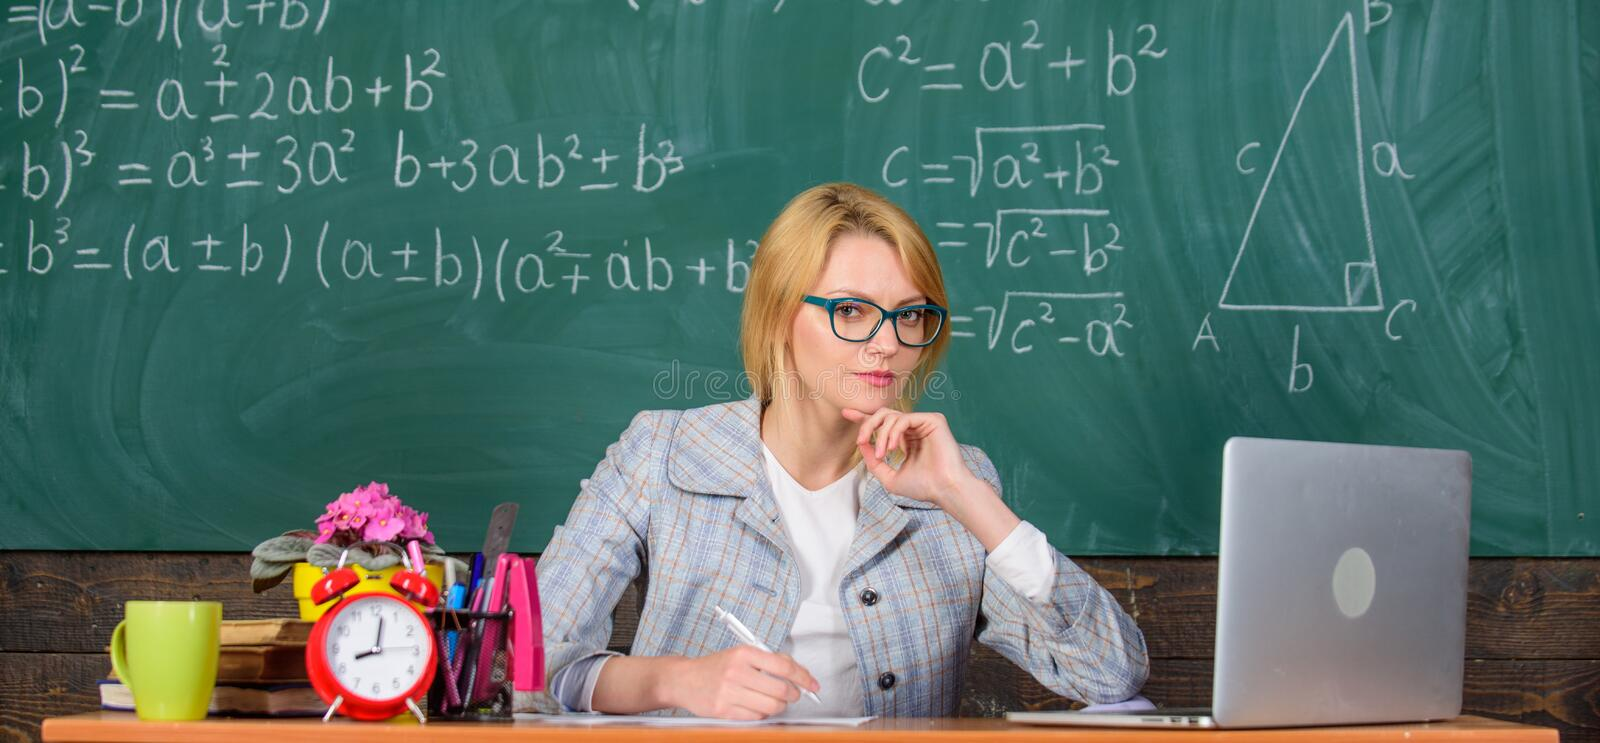 Teacher woman sit table classroom chalkboard background. Present lesson in comprehensive manner to facilitate learning. Promoting interactive learning. Create stock photos